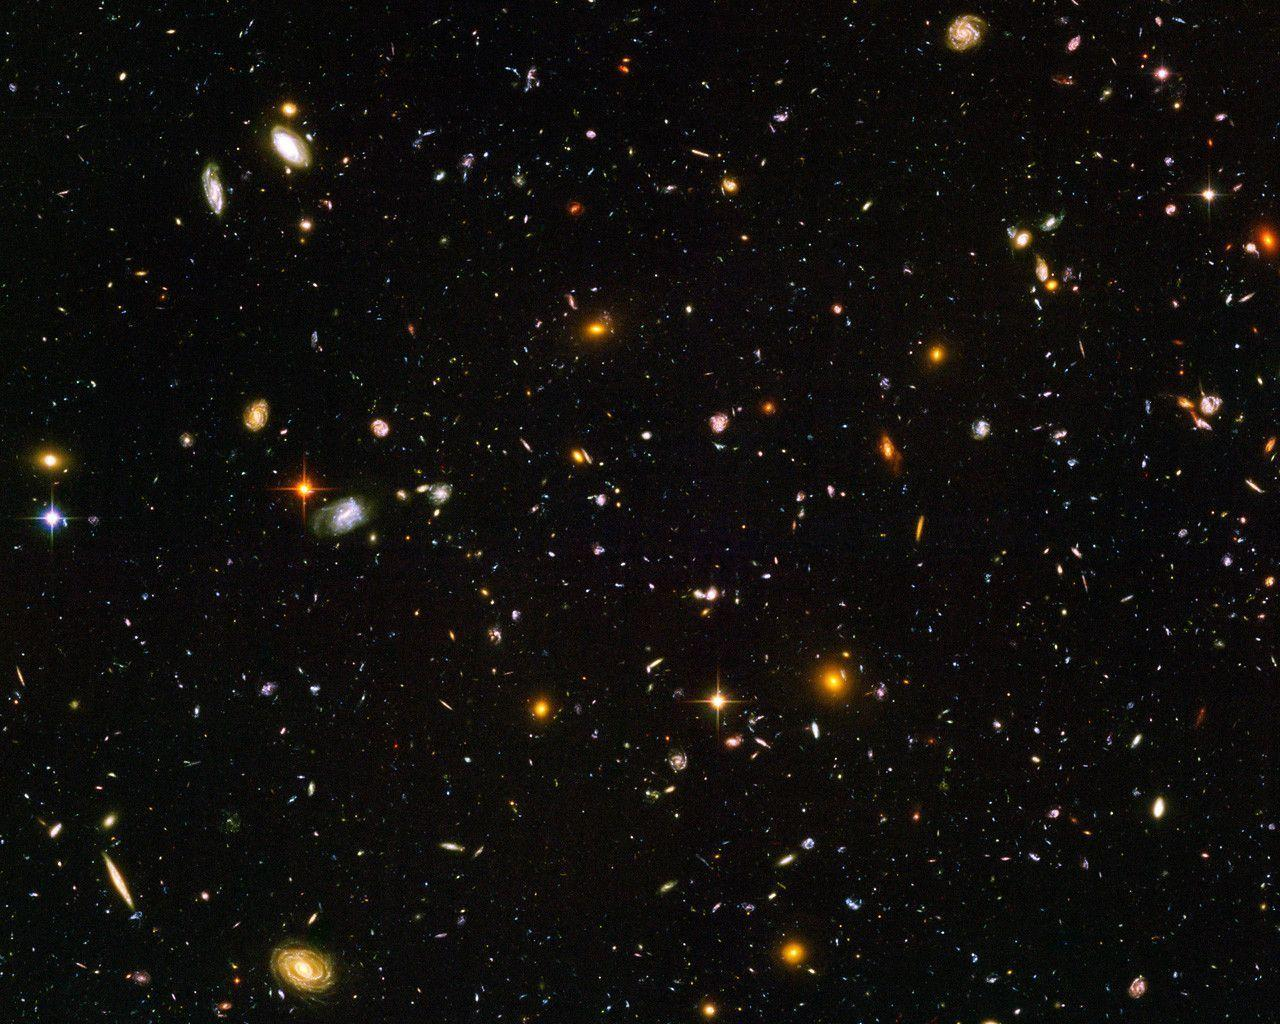 hubble deep field hd wallpaper - photo #18